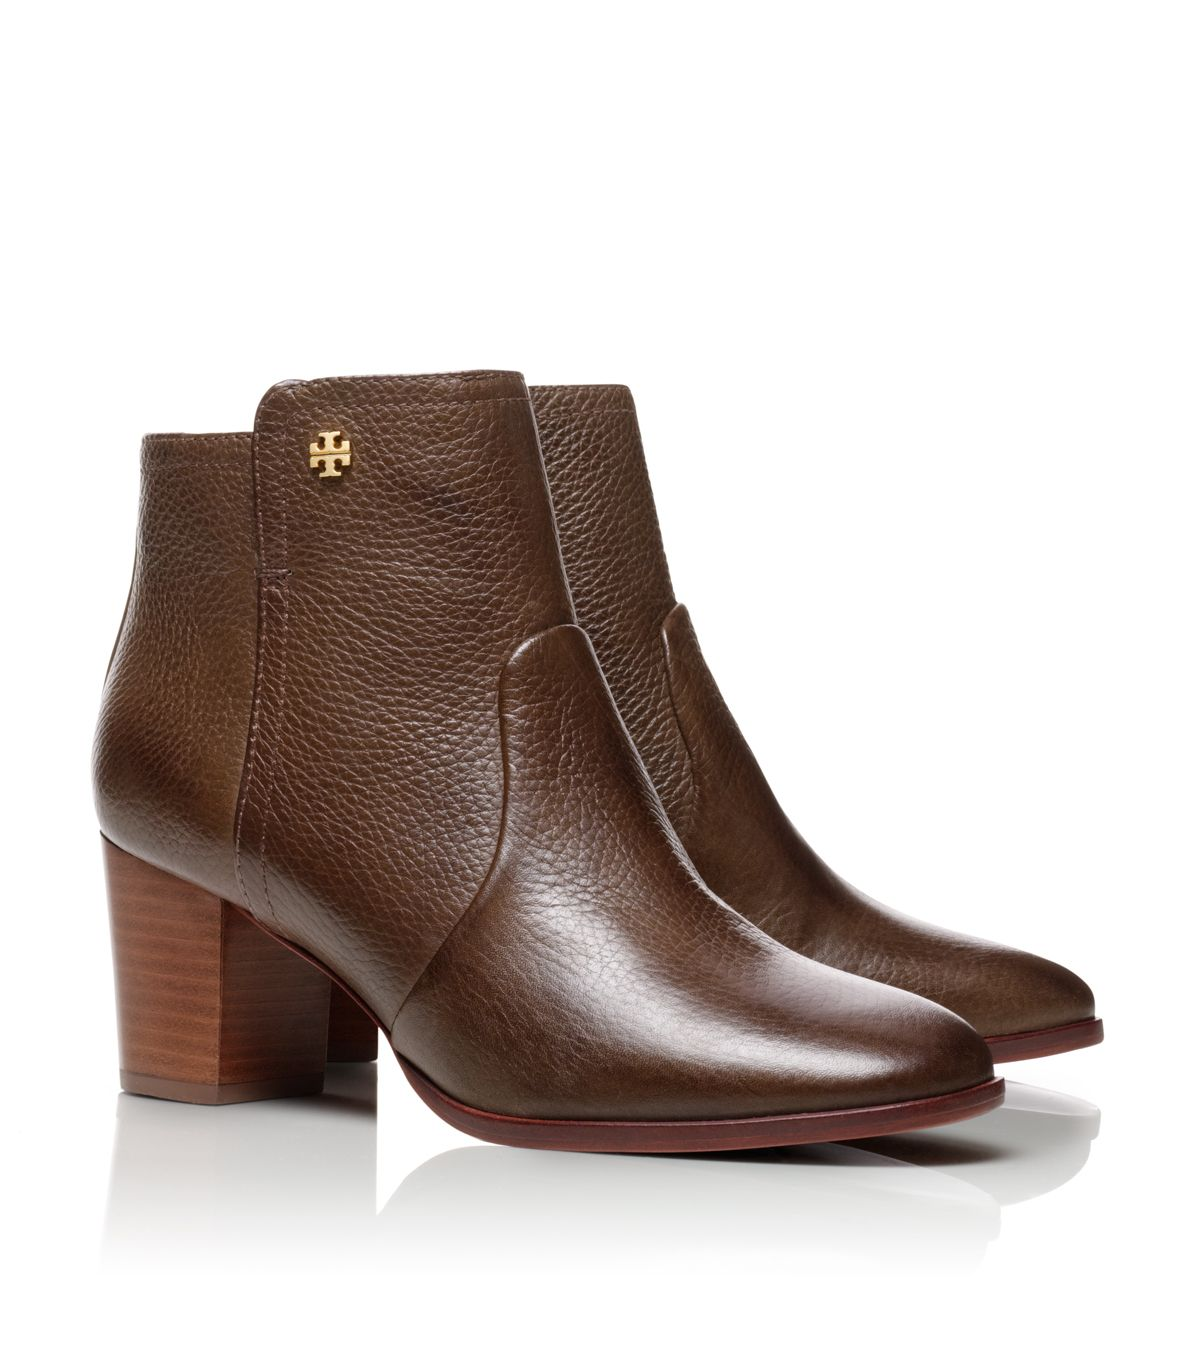 Lyst Tory Burch Sabe Bootie In Brown